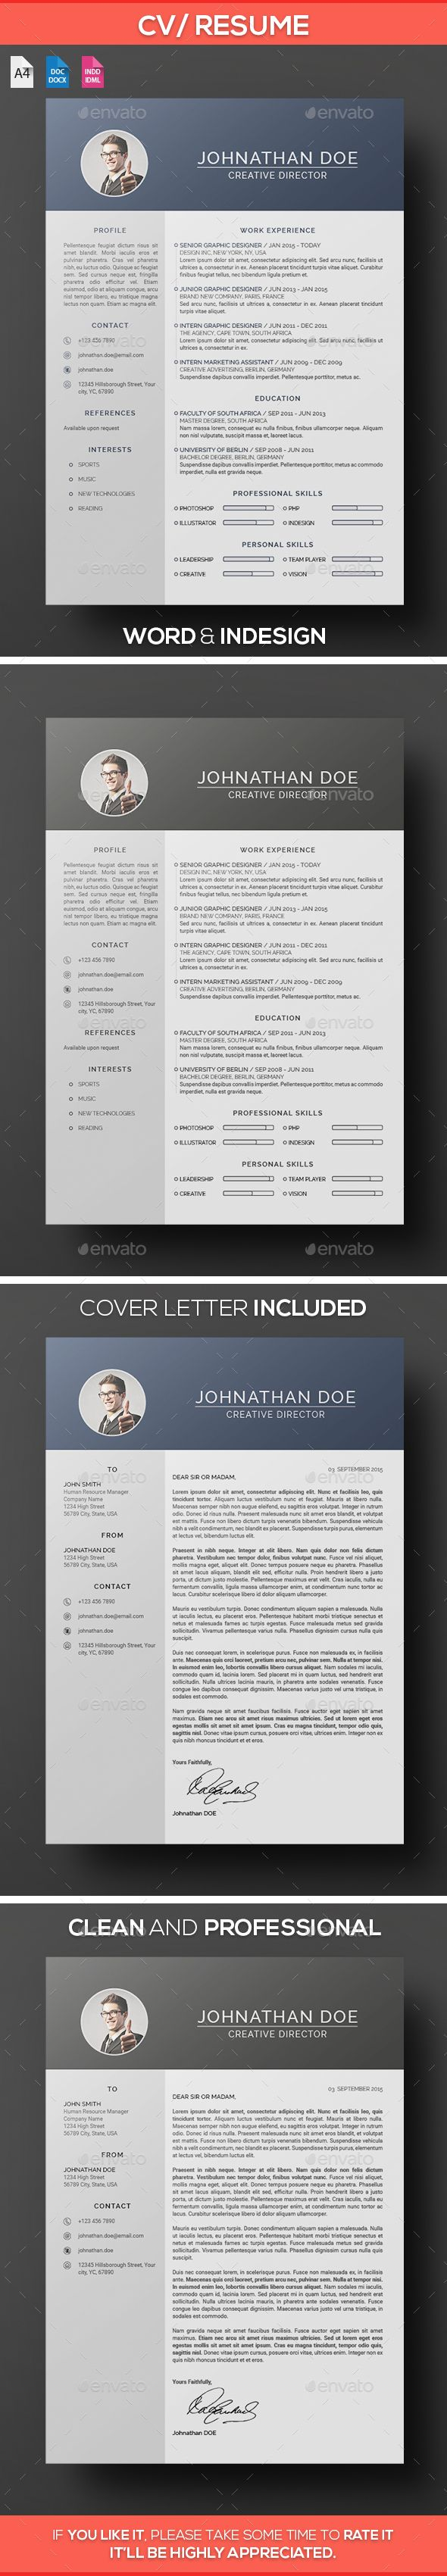 Word Cv Templates 2007%0A Clean Resume   CV Template InDesign INDD  design Download   http   graphicriver